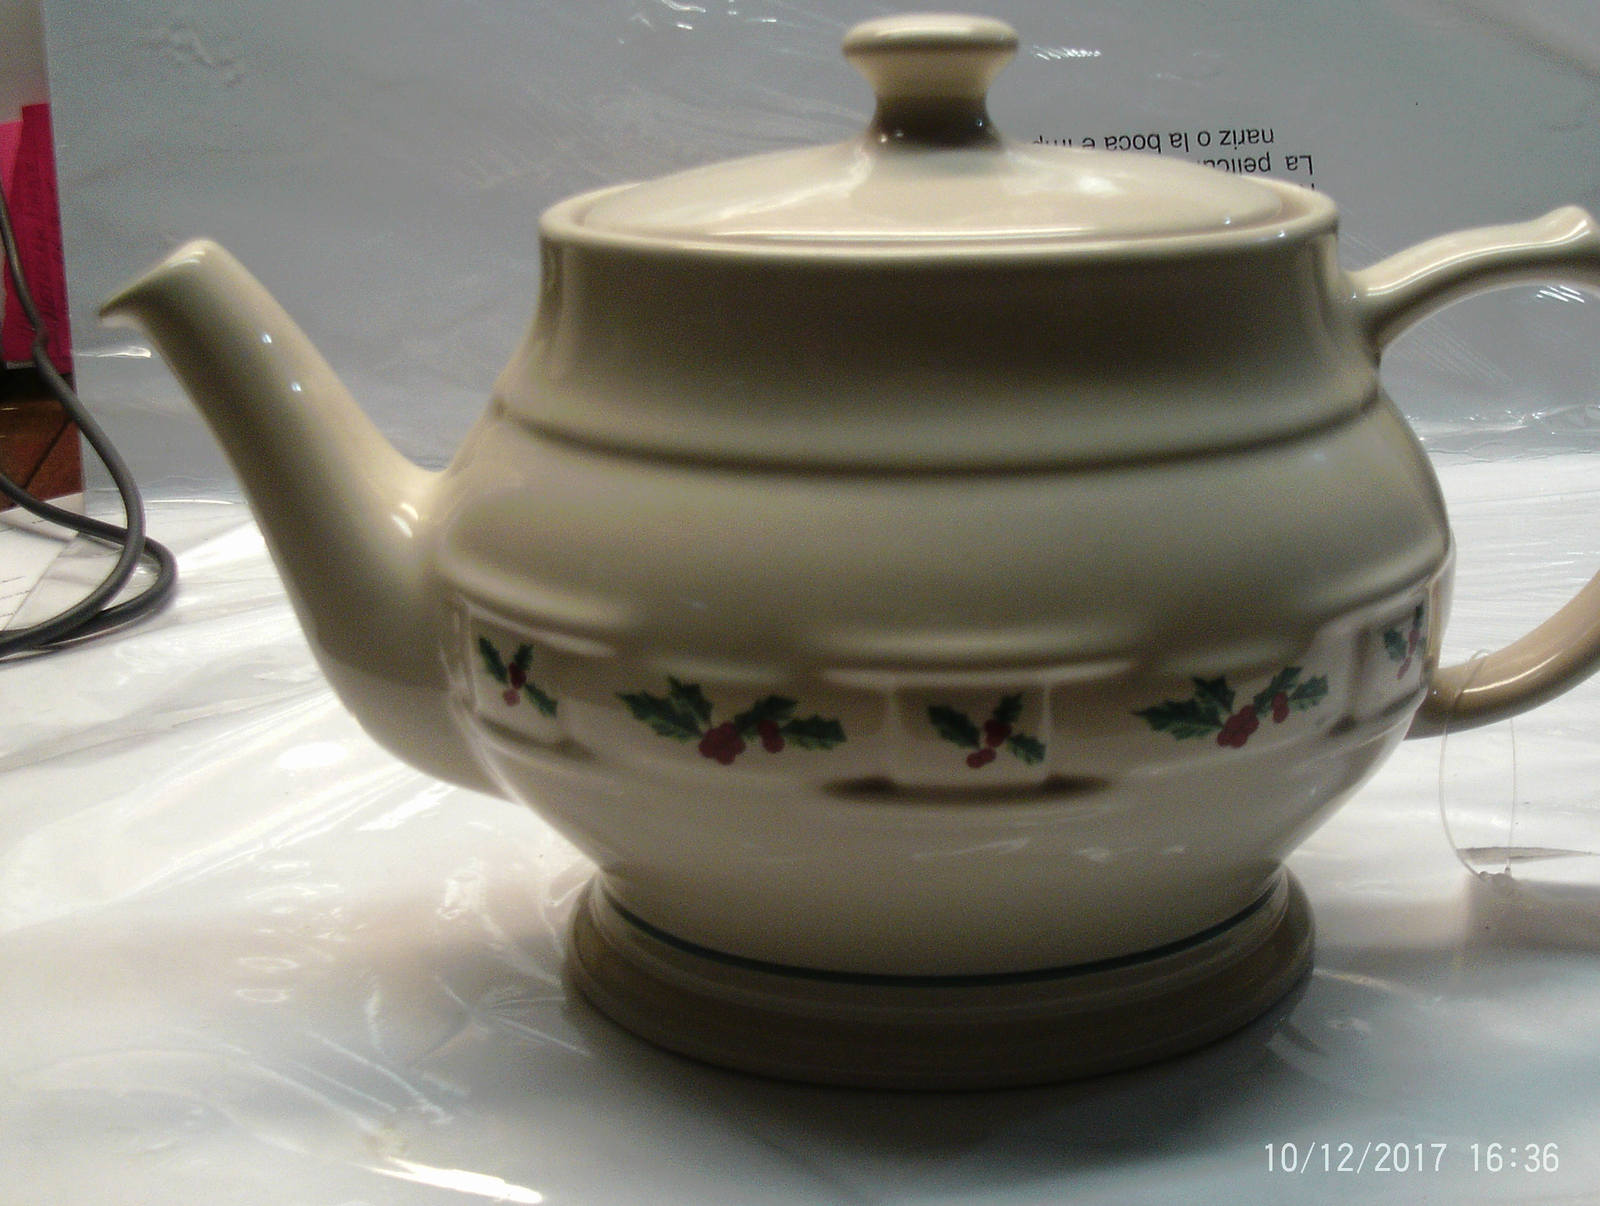 Primary image for Vintage Holiday Ceramic Creamer Pitcher with raised designs, white